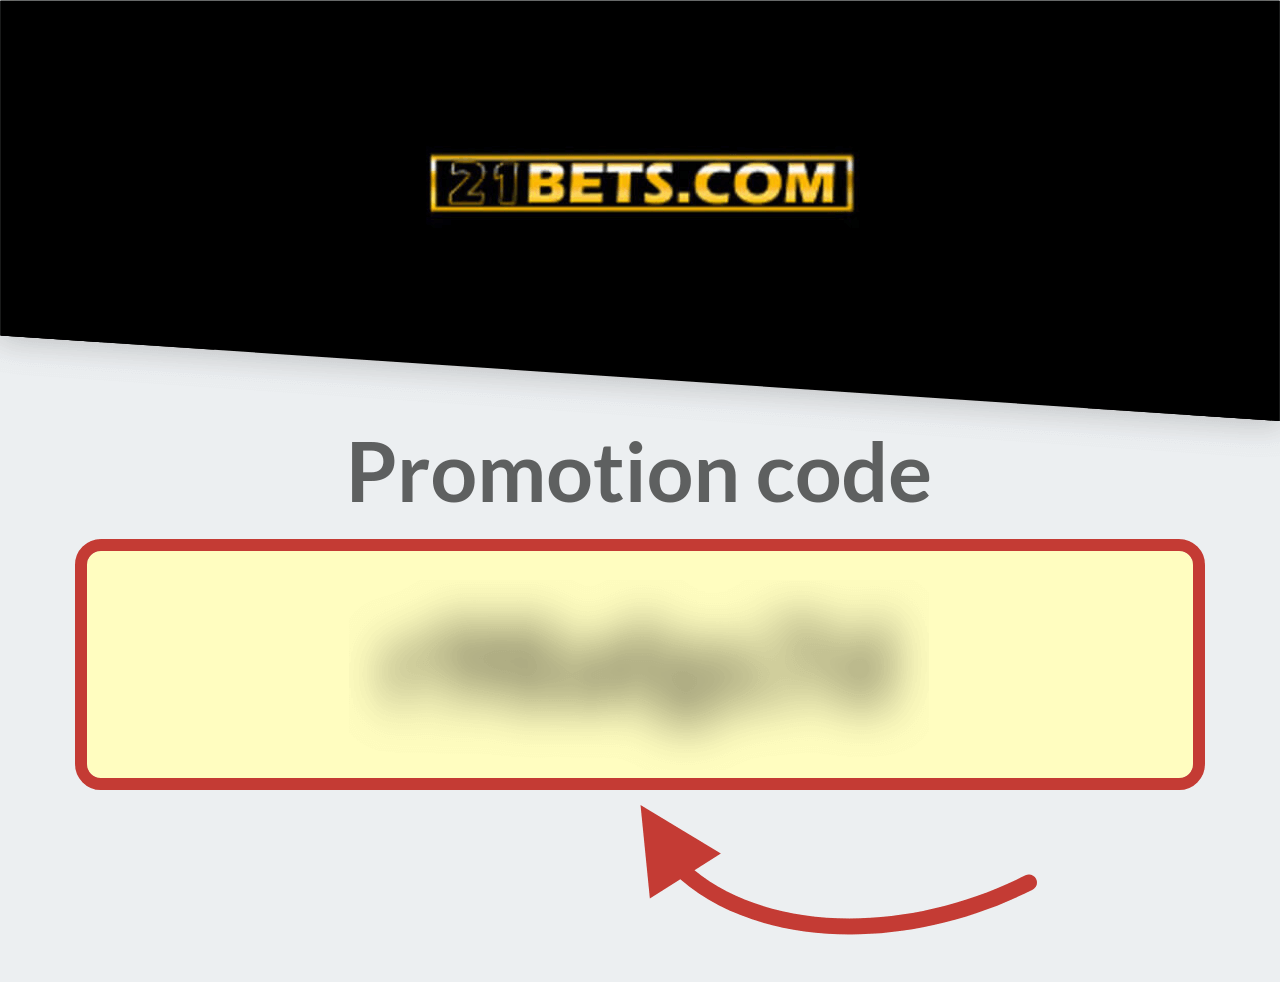 21bets Promotion Code